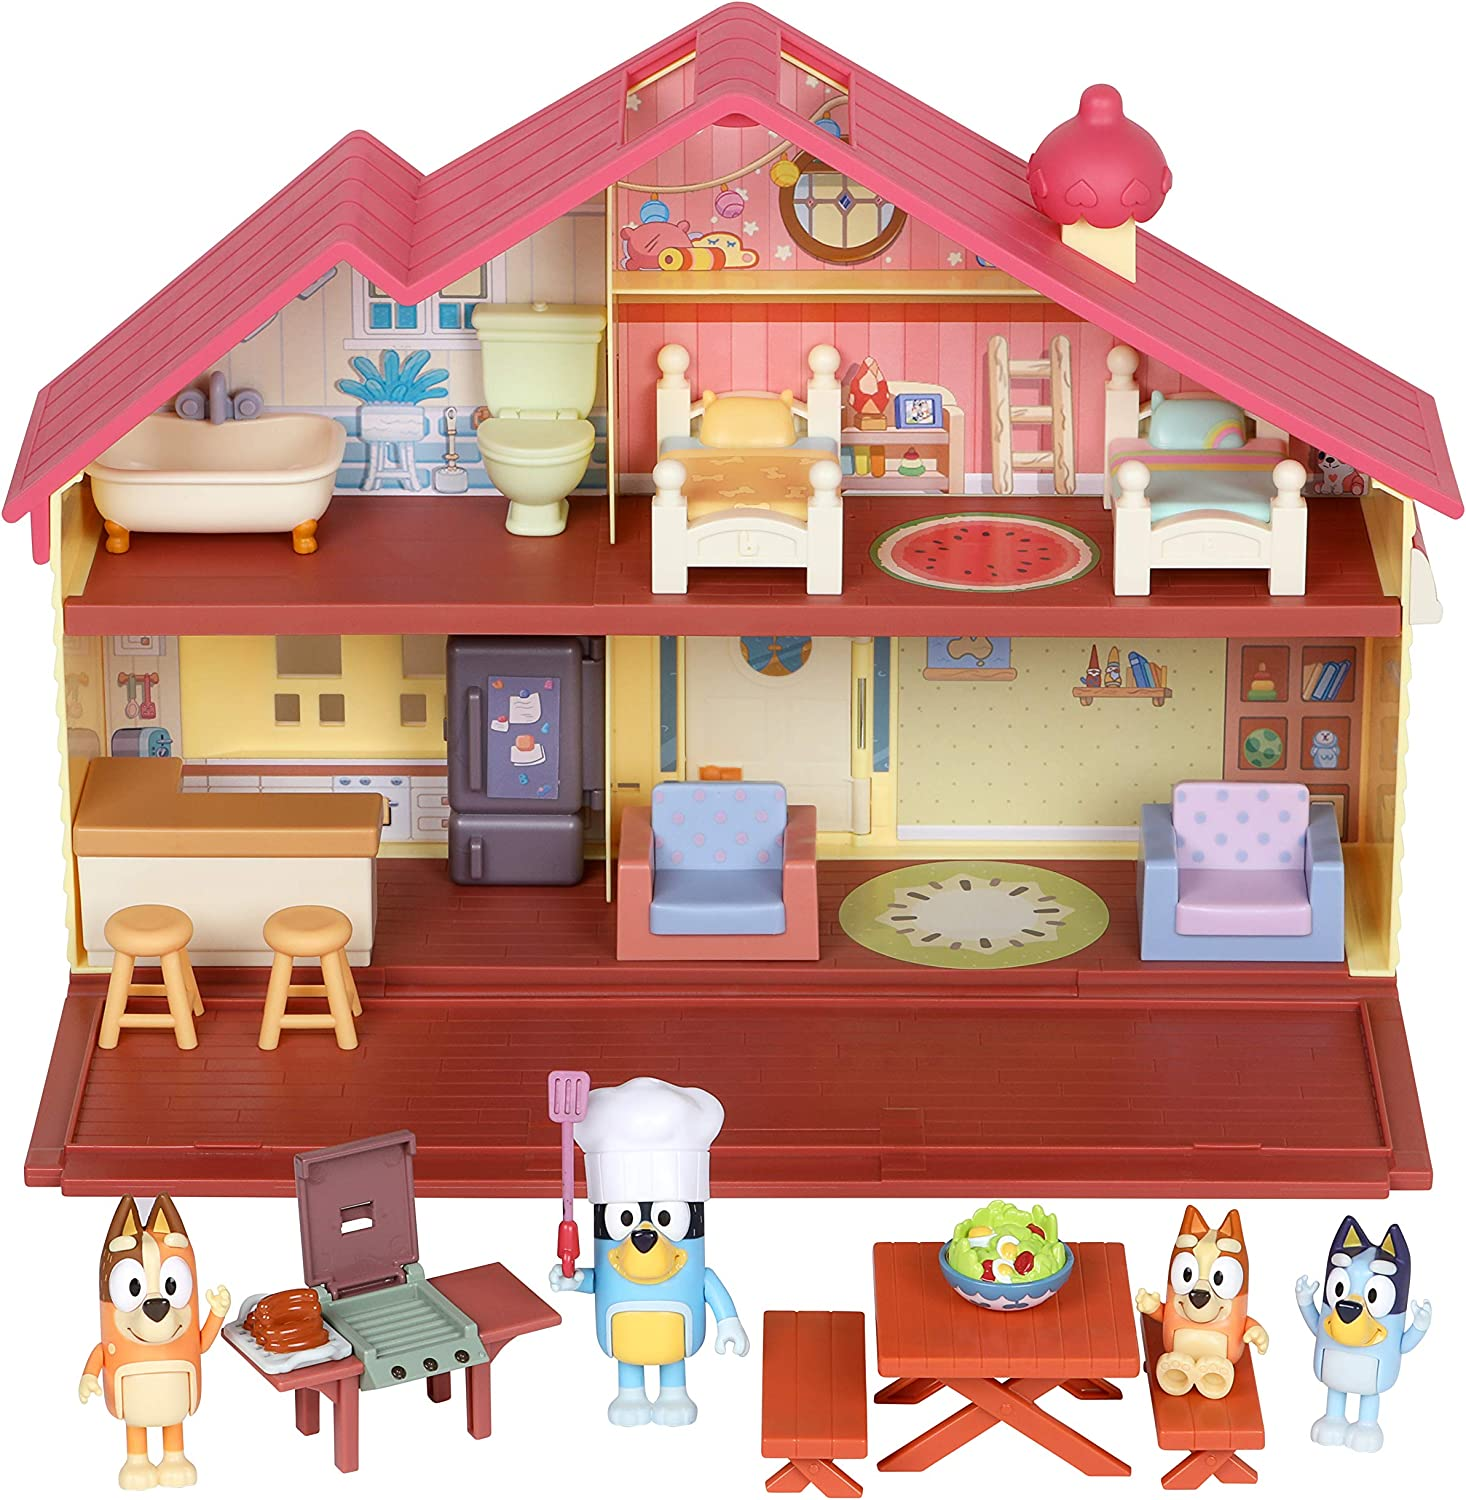 Bluey Mega Bundle Home Max 88% OFF Cheap SALE Start BBQ Playset Amazon 4 Figures and Excl